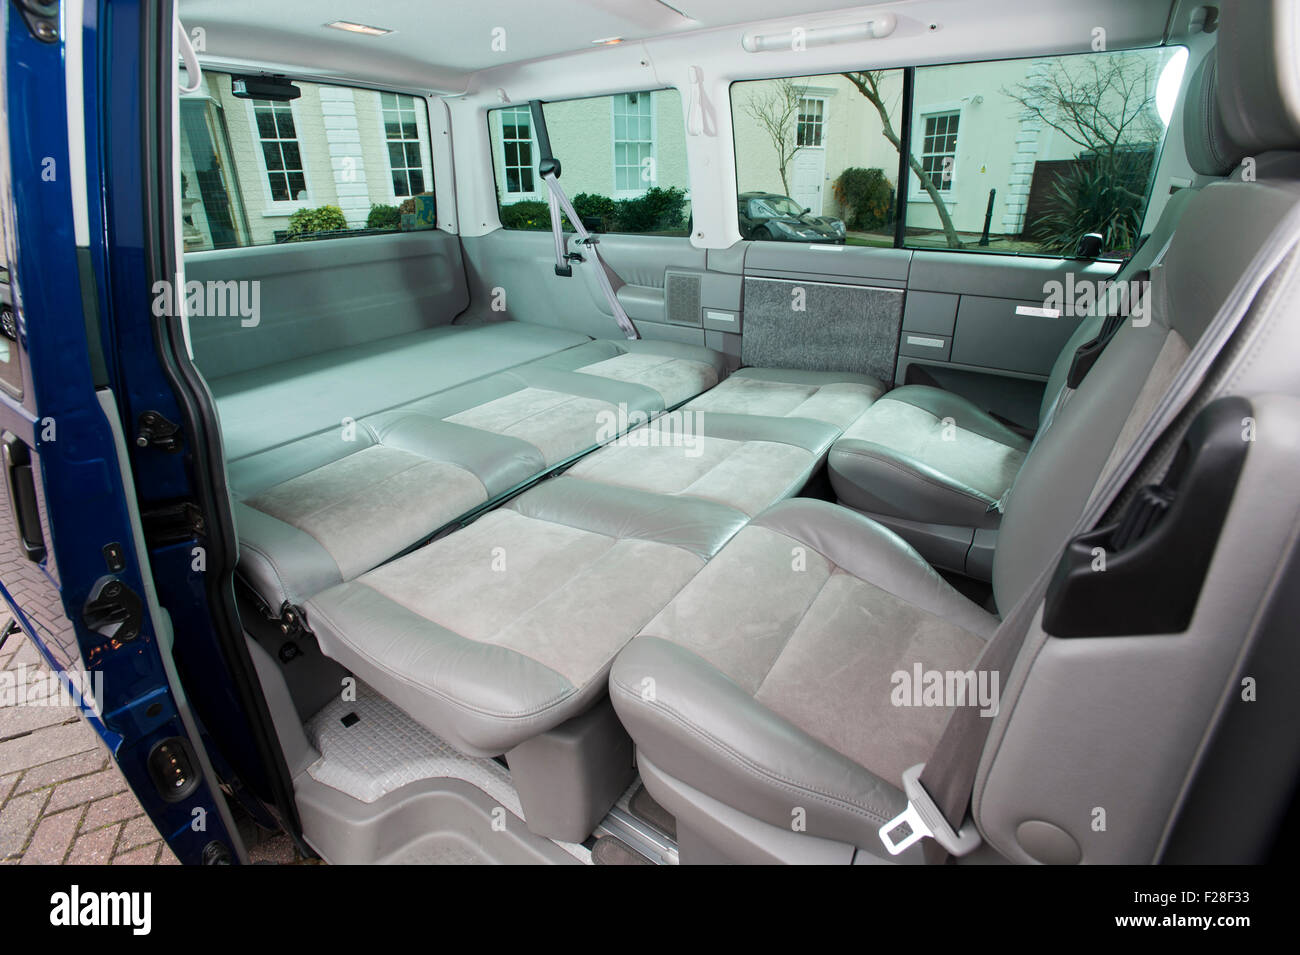 2001 Volkswagen T4 Camper Van Interior Rear Seats Folded Down Into Large Bed